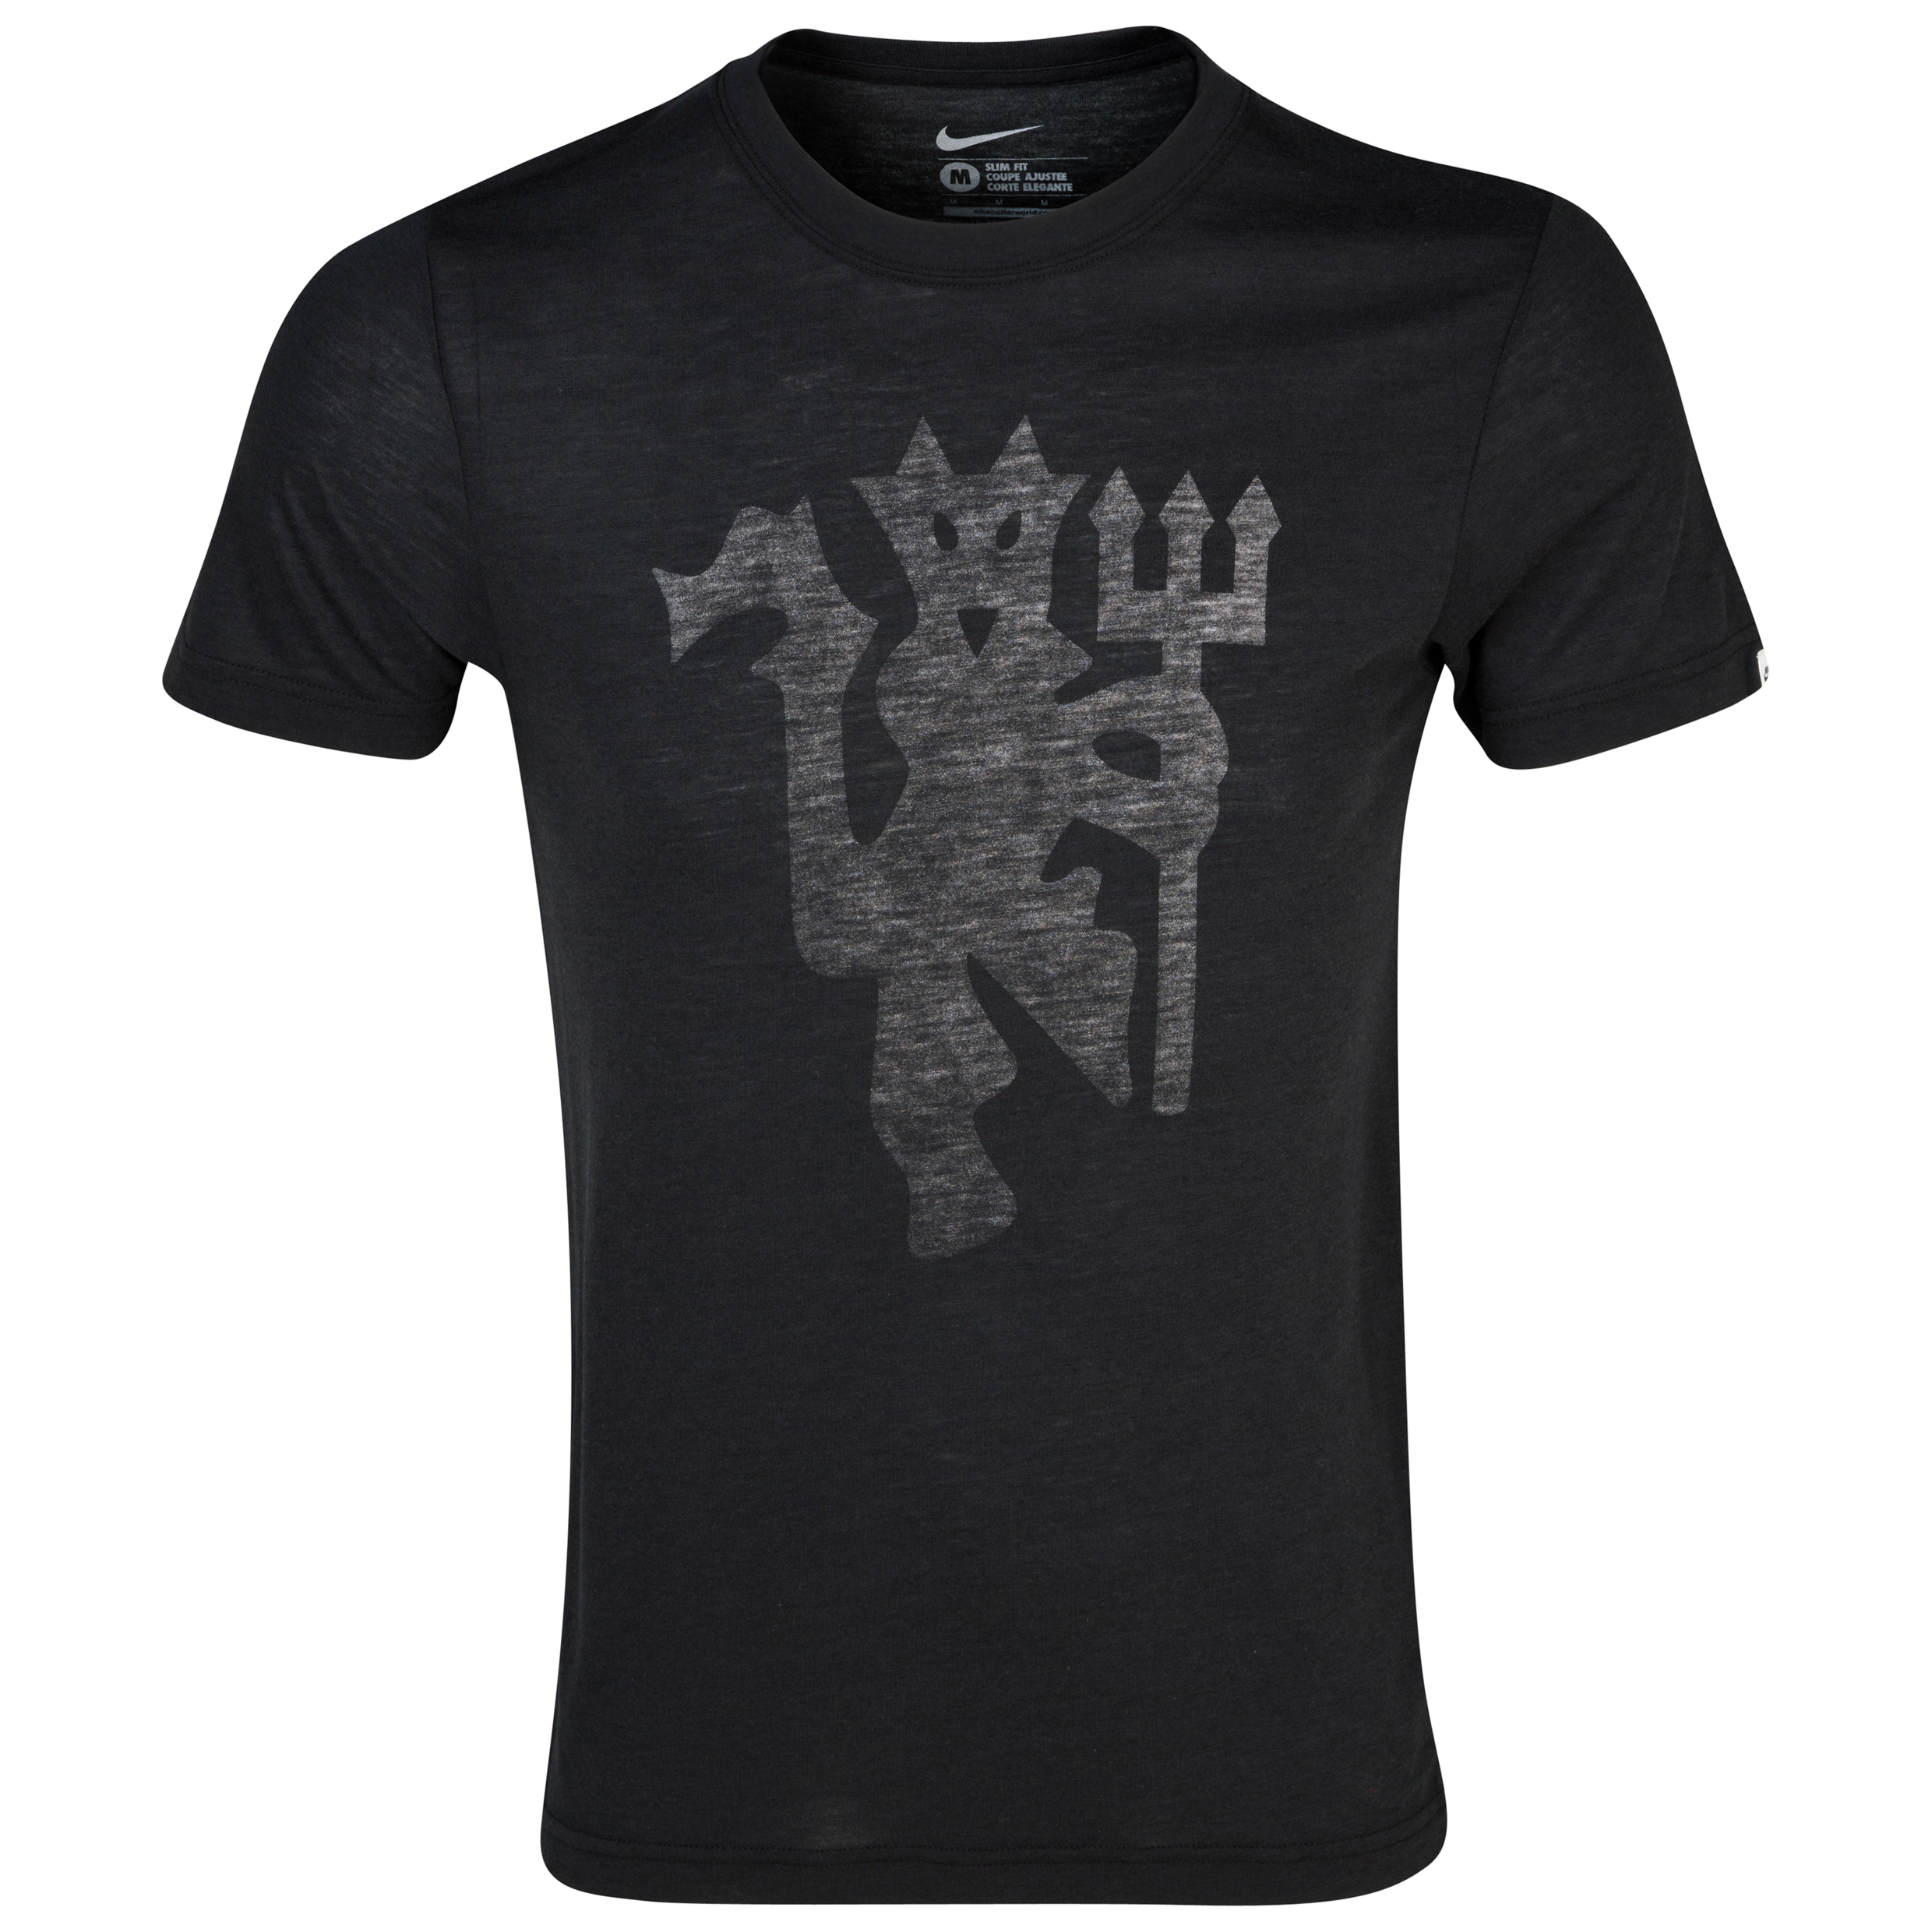 Manchester United Covert Graphic T-Shirt - Black Black